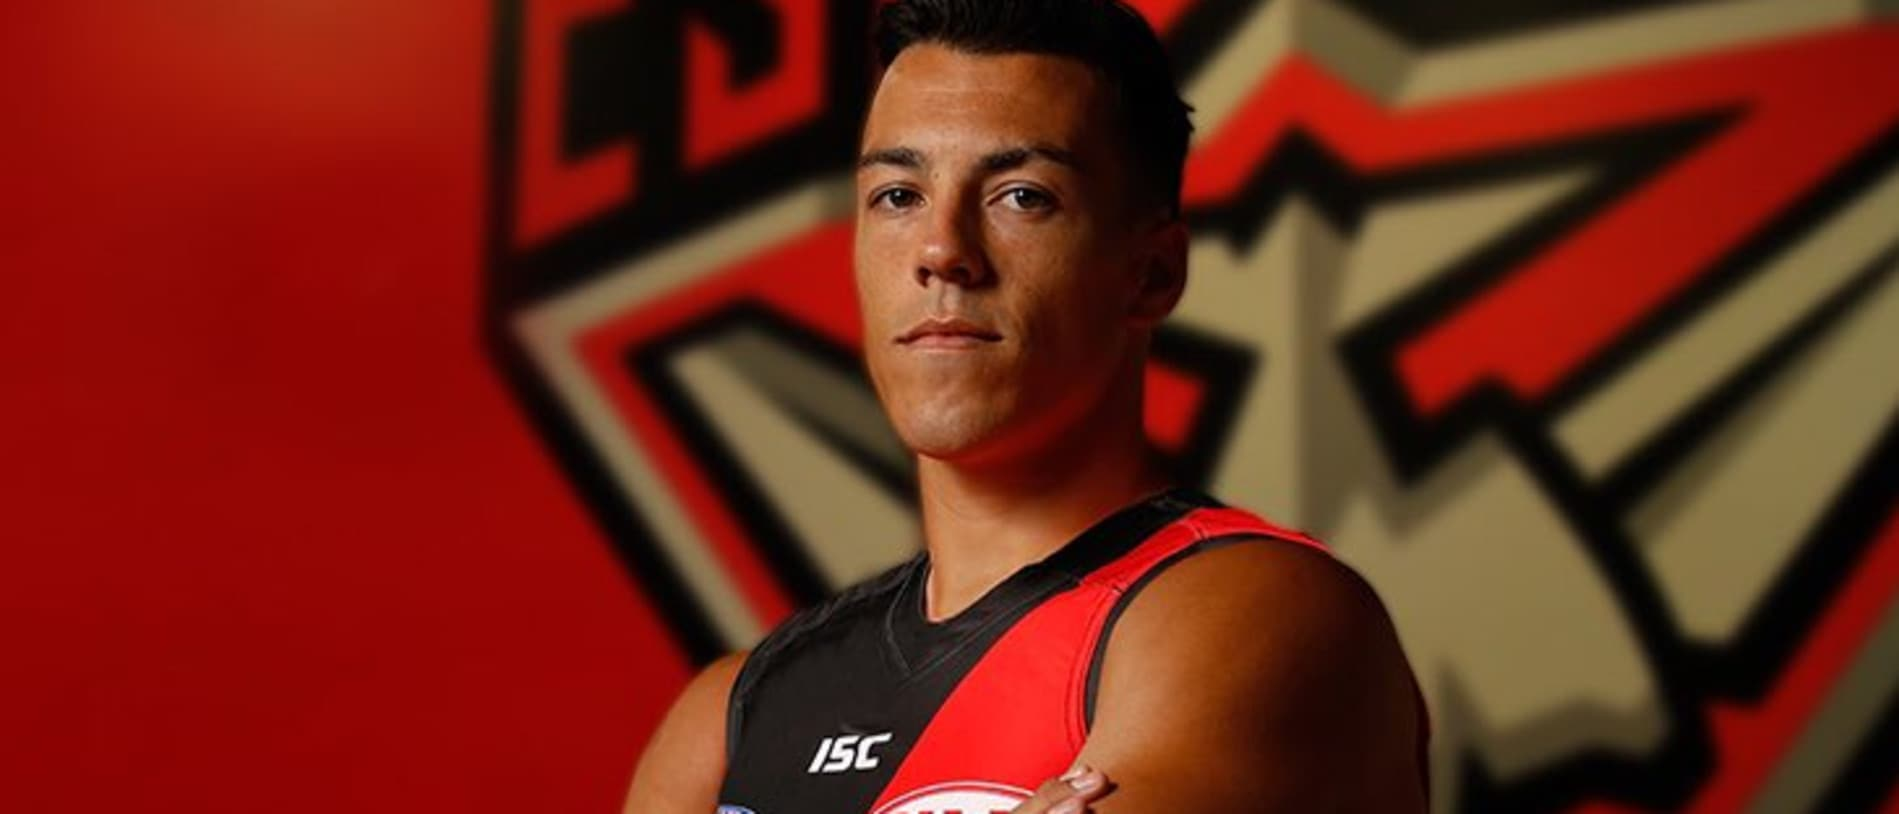 With 10 minutes left in the trade period, Dylan Shiel got to Essendon.